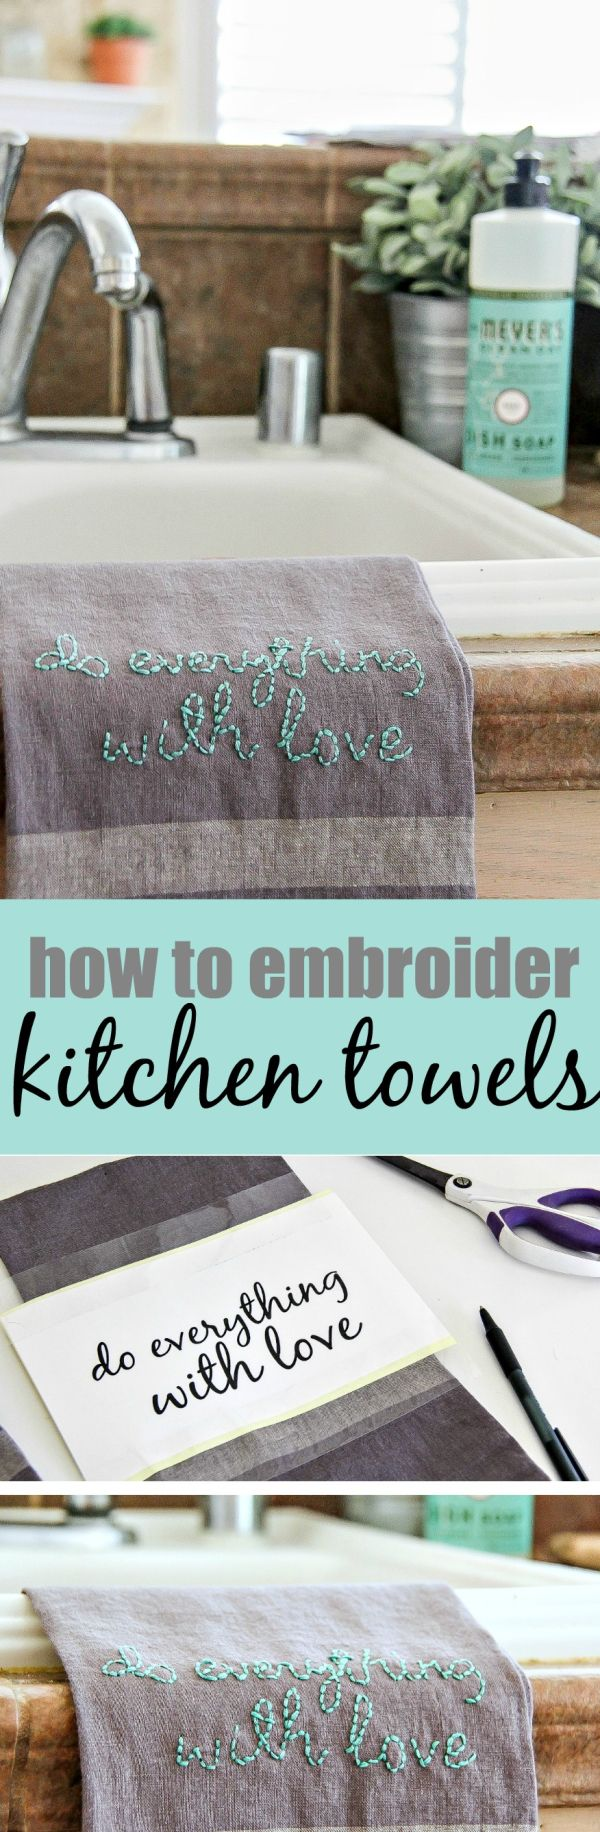 best 25 kitchen towels crafts ideas on pinterest kitchen towels